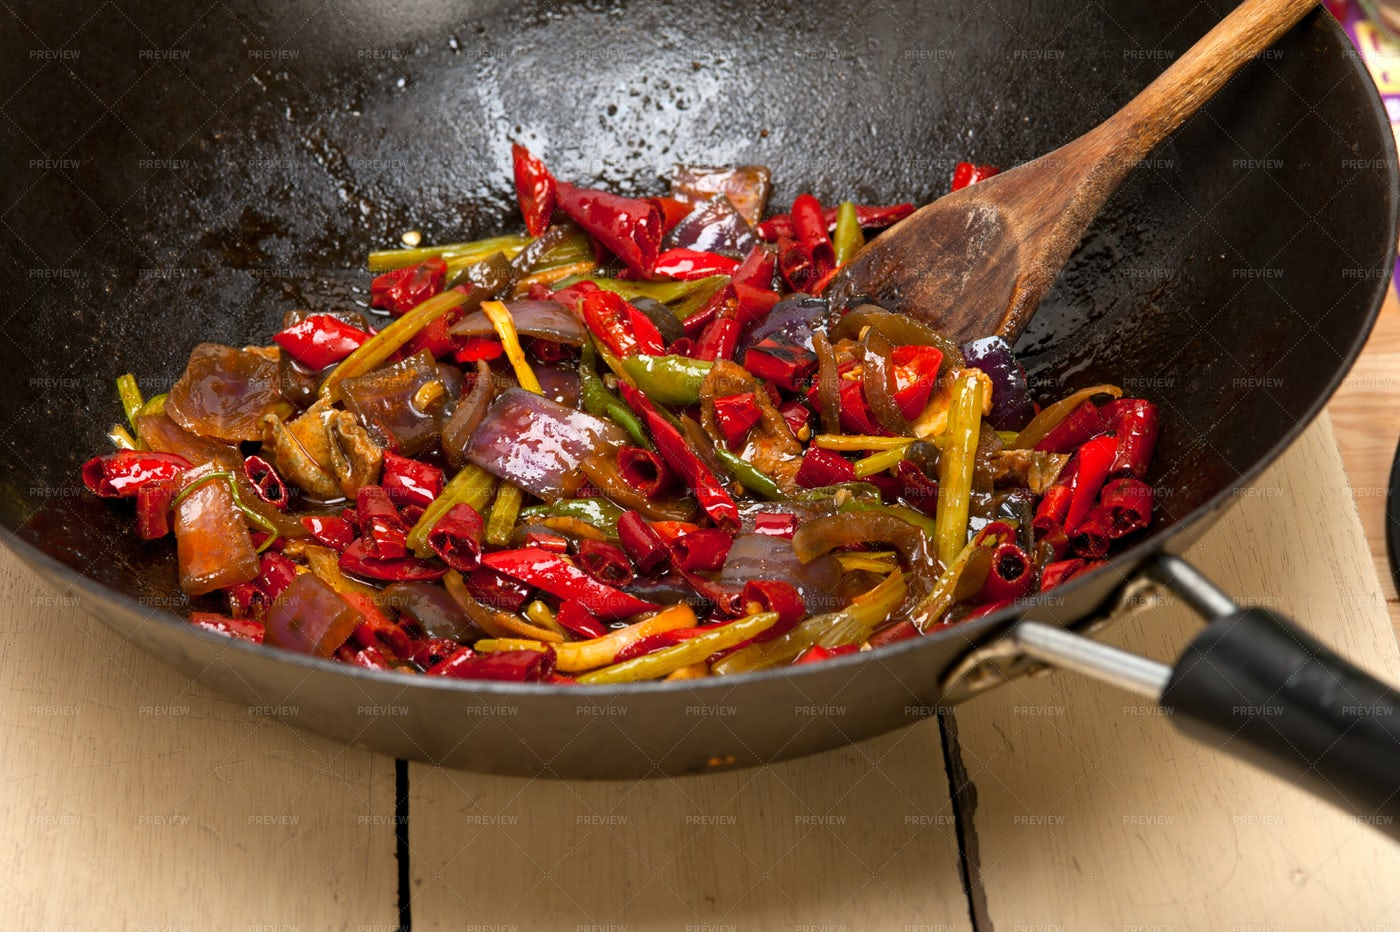 Wok Of Fried Vegetables: Stock Photos